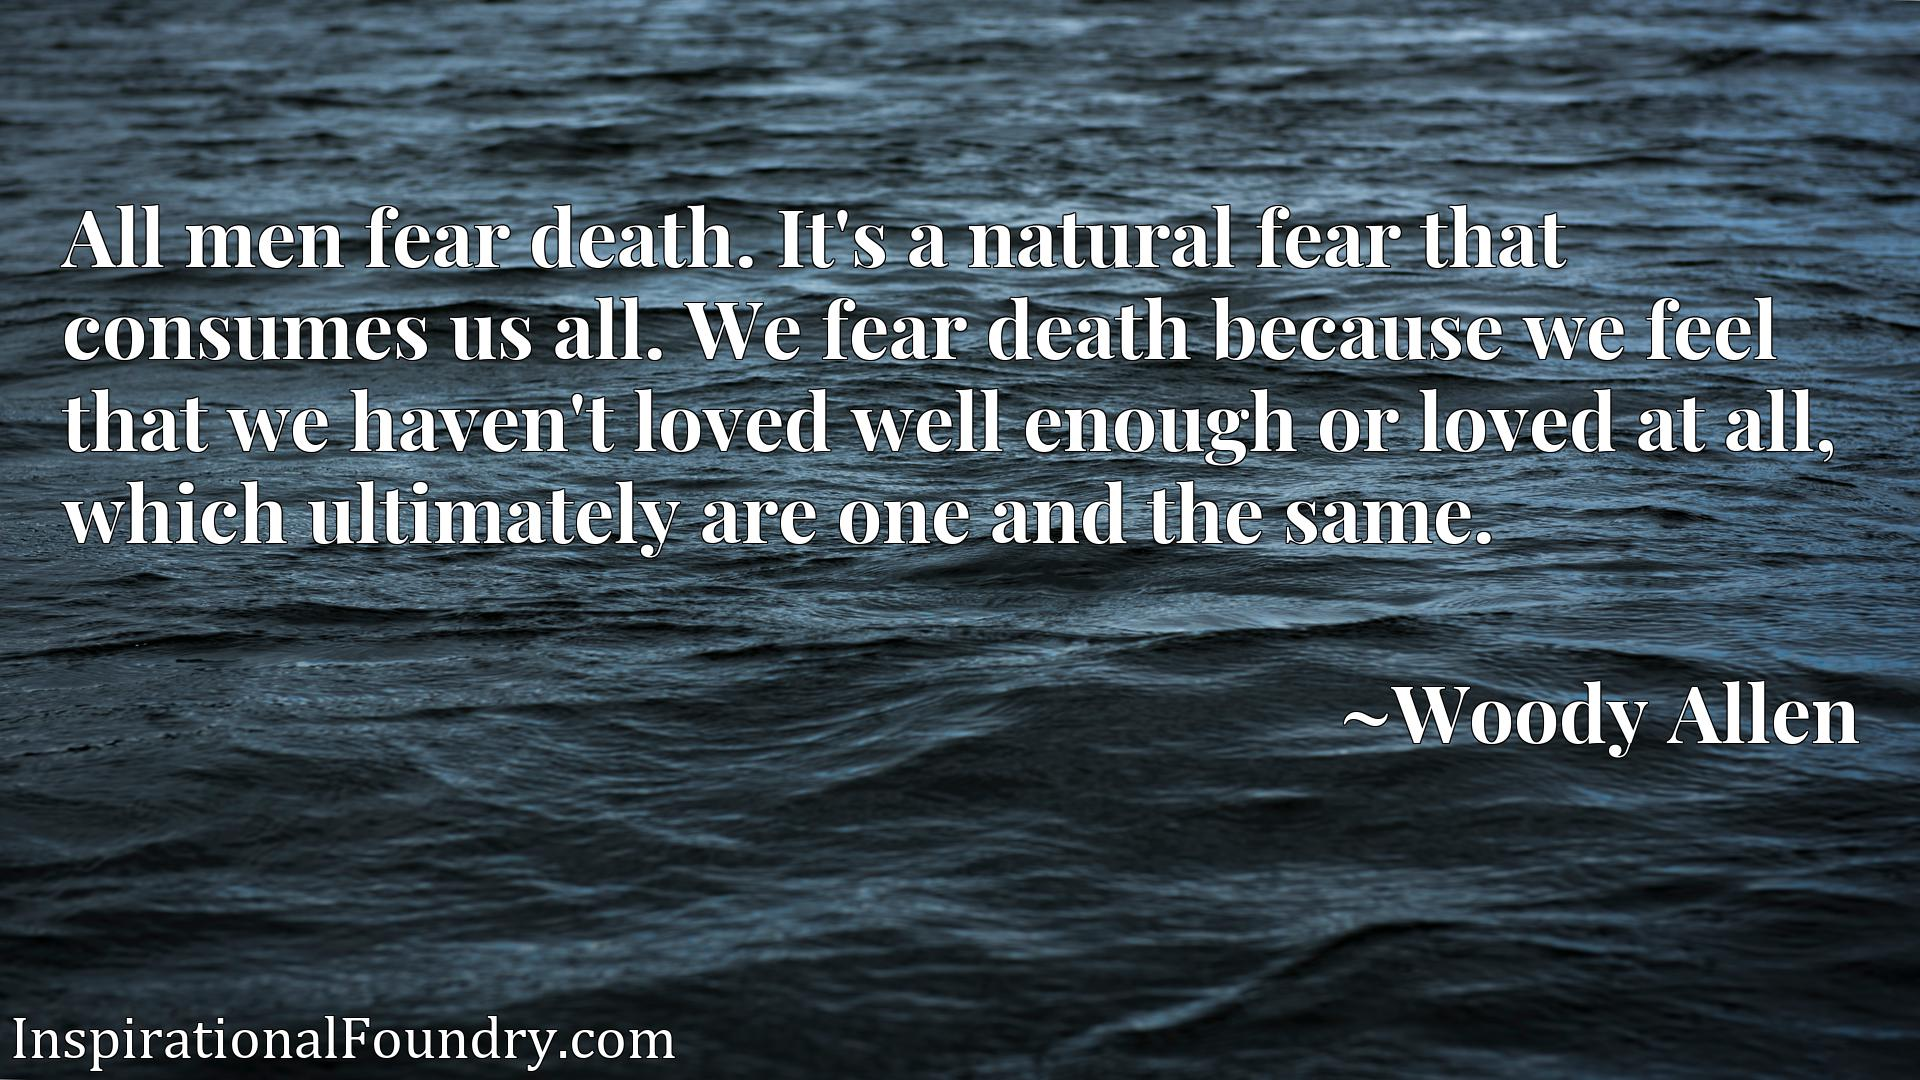 All men fear death. It's a natural fear that consumes us all. We fear death because we feel that we haven't loved well enough or loved at all, which ultimately are one and the same.